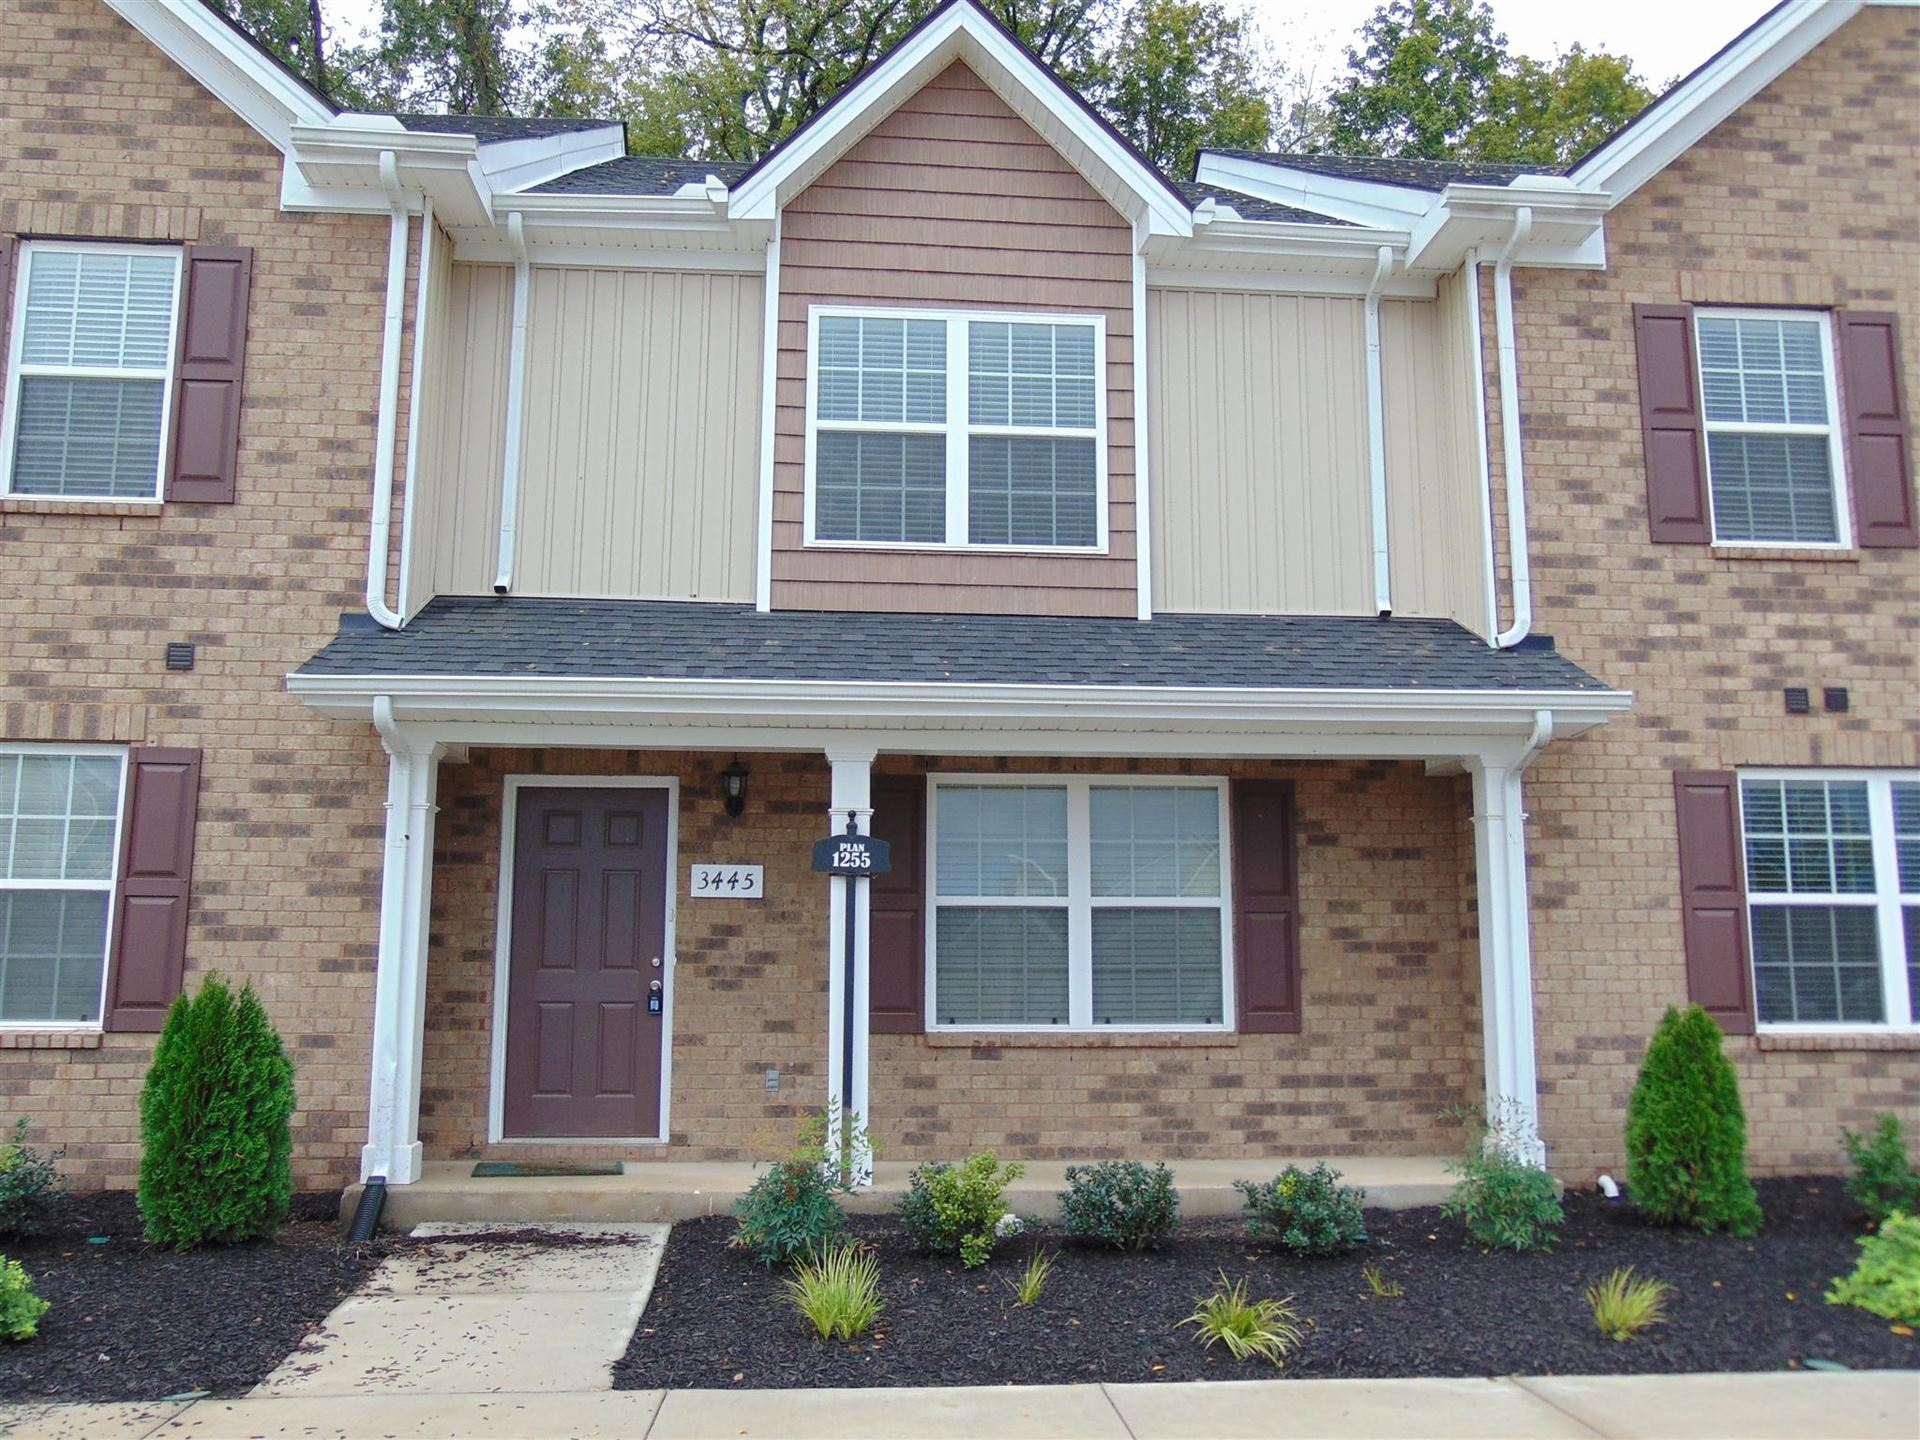 3415 Donerail Circle #379, Murfreesboro, TN 37128 - MLS#: 2220793